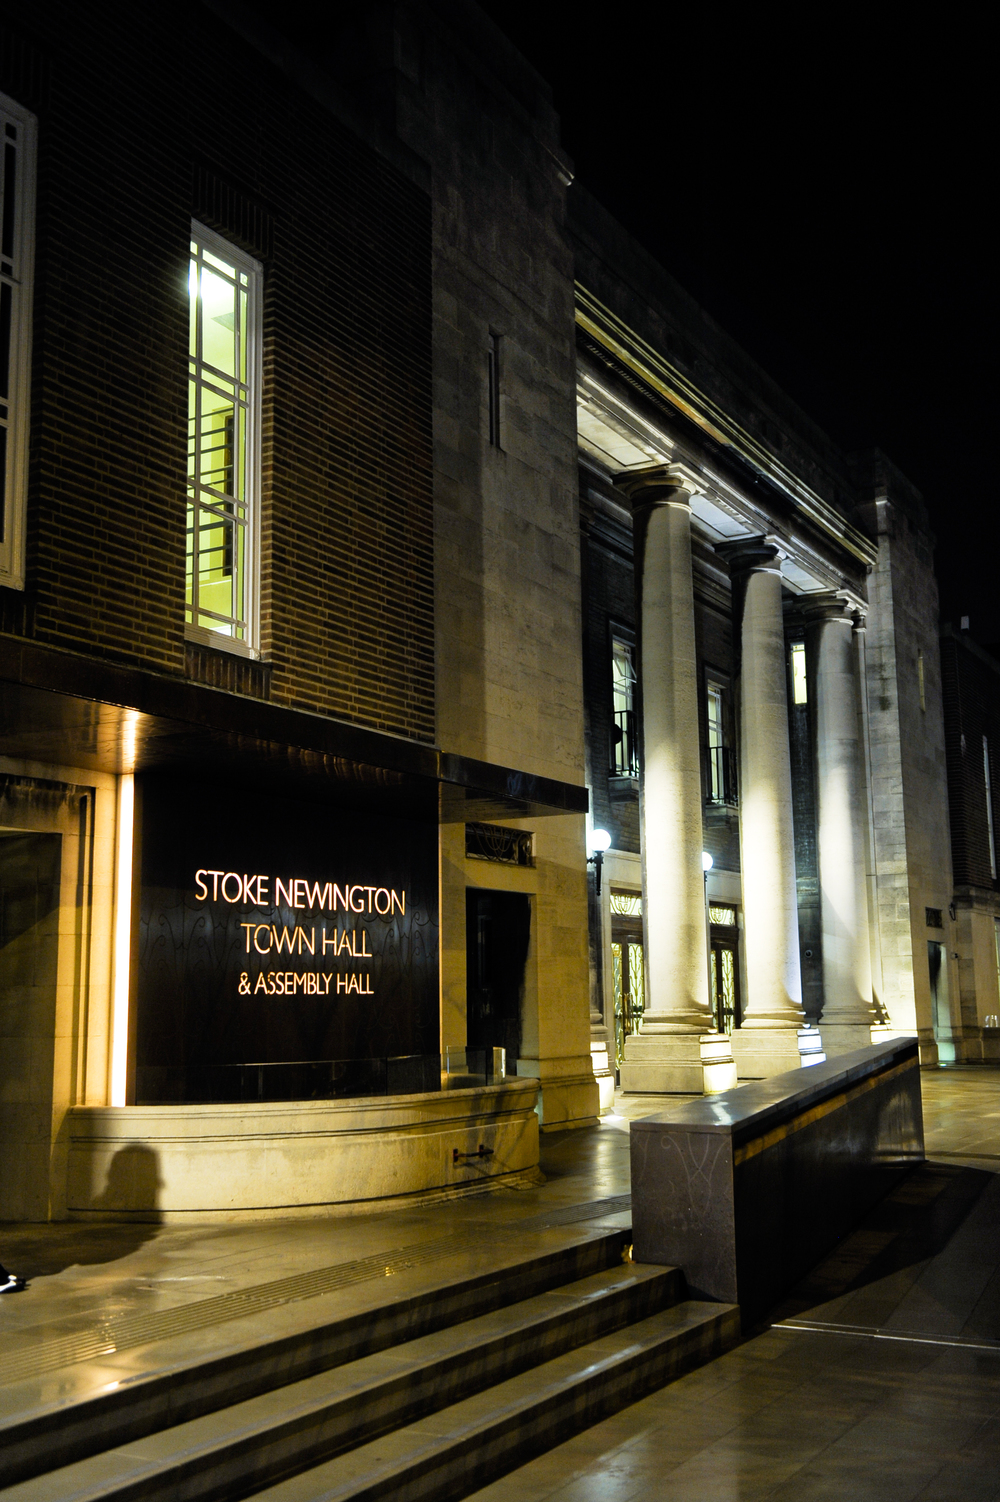 Entrance to Stoke Newington Town Hall